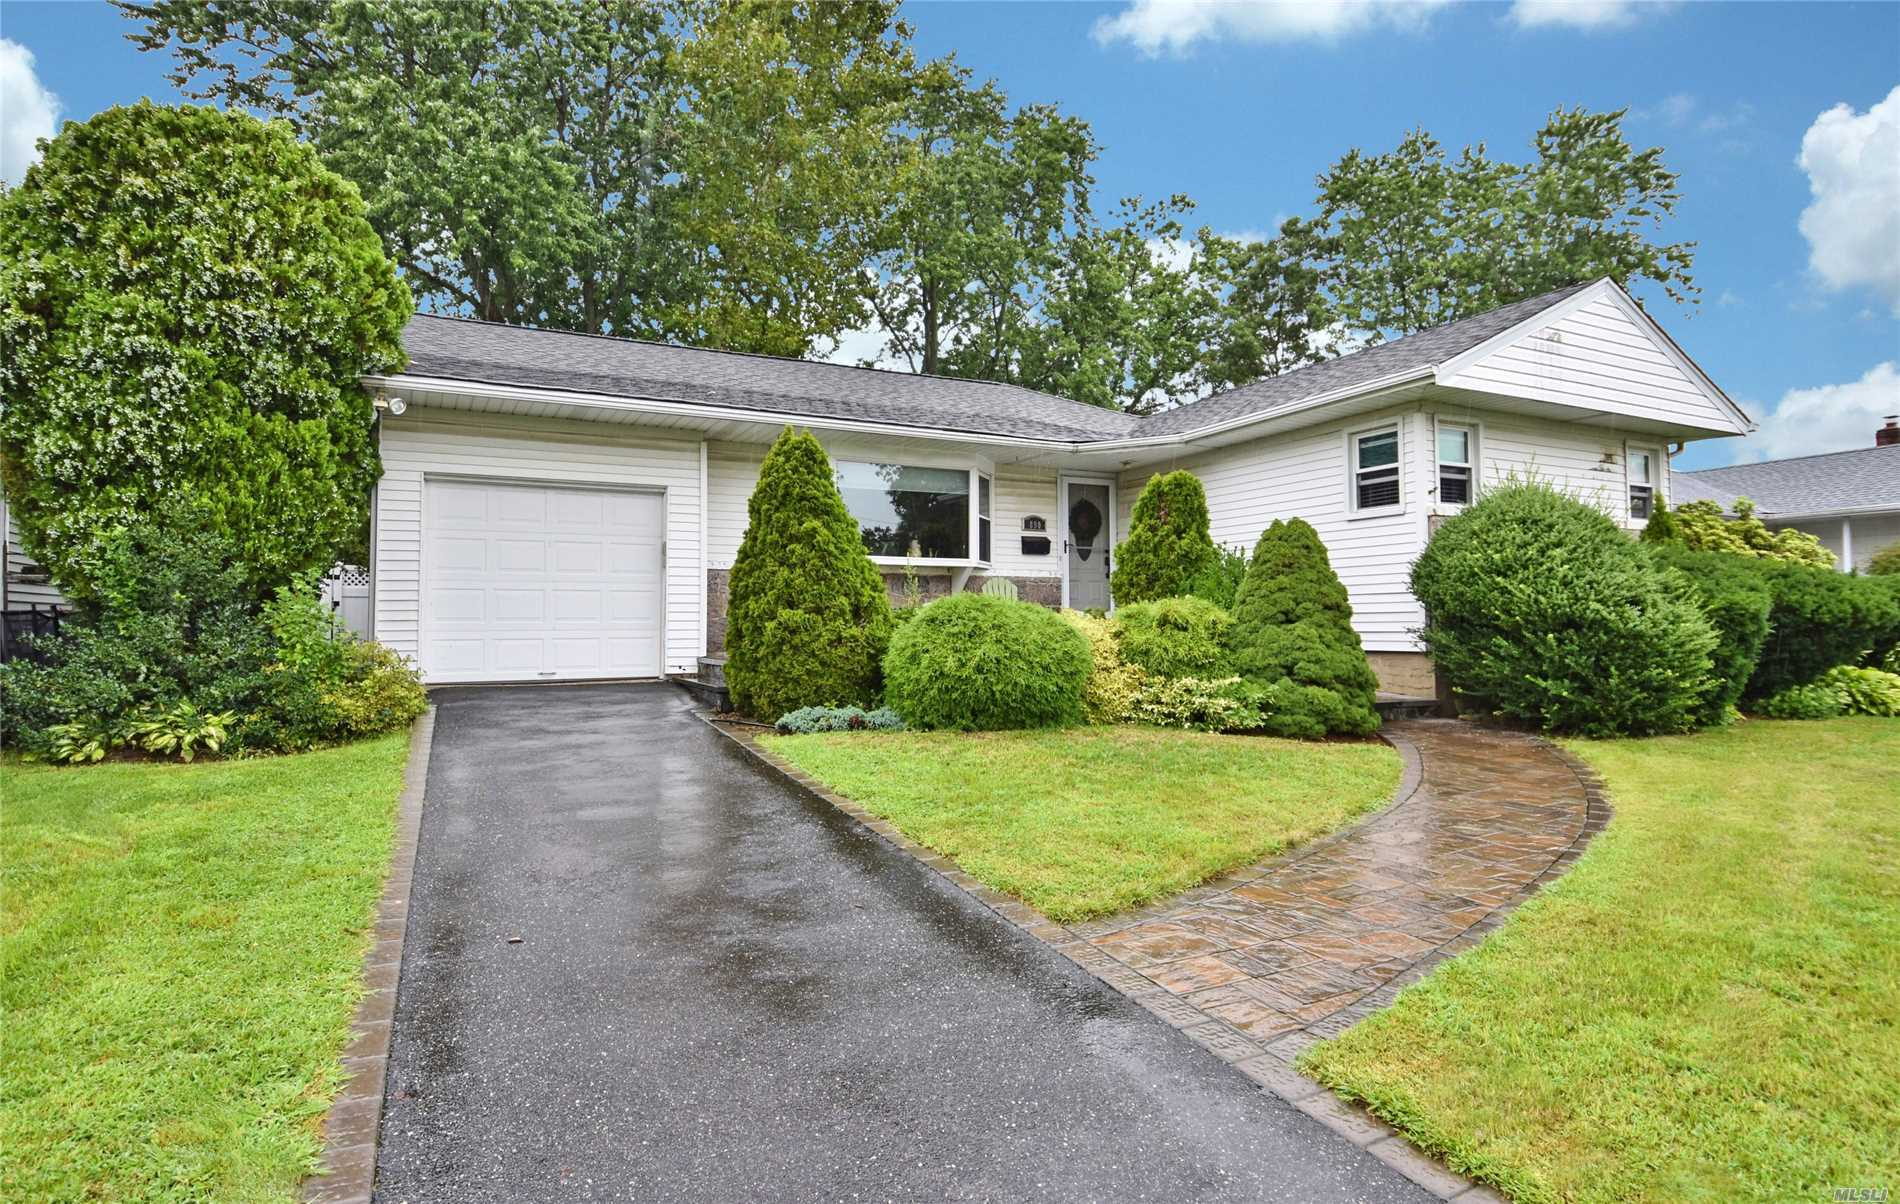 Expanded Ranch, Set Mid Block In The Catalina Estates Section Of N. Bellmore. It Features A Sun Lit Living Room With A Bay Window, A Dining Room, Eik, Master Bedroom With A F/Bth, 3/4 Additional Bedrooms, A Full Hall Bath And A Full Finished Basement. N. Bellmore Schools. Close To All.